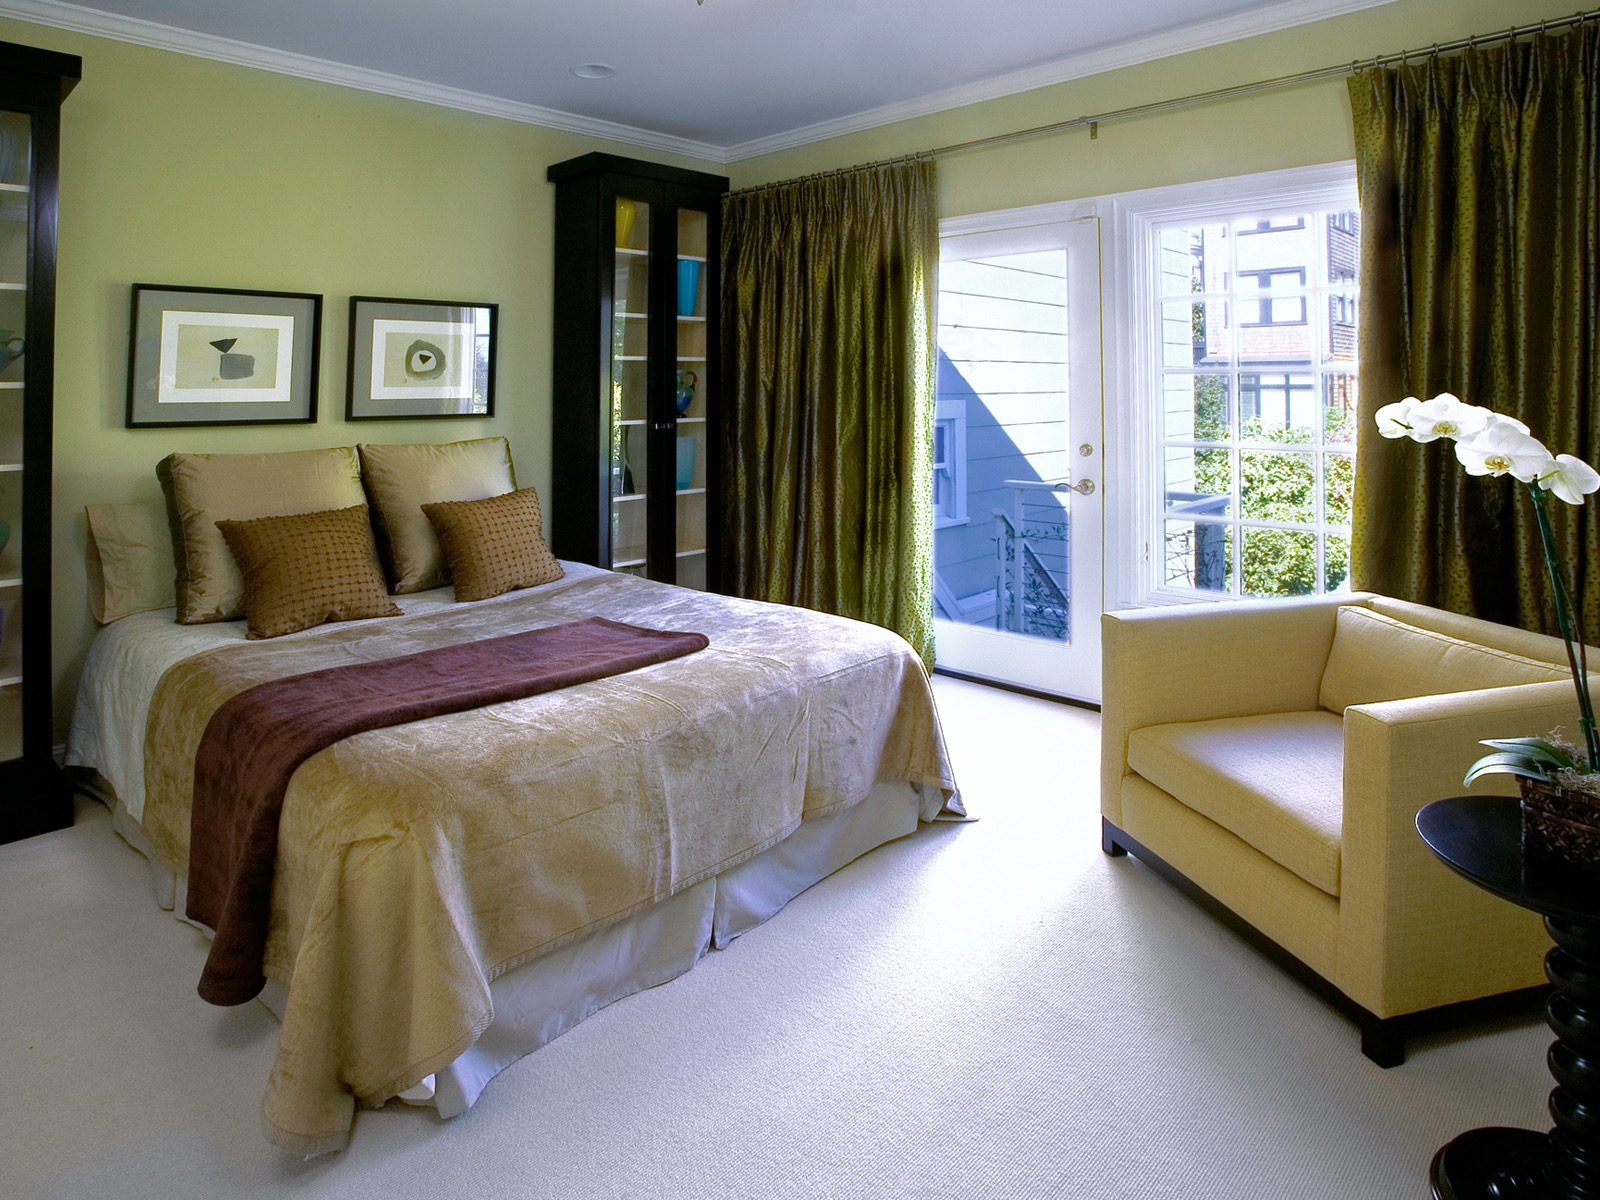 Interior Bedroom Color 20 Lovely Bedroom Paint And Color Ideas 16569 Bedroom Ideas